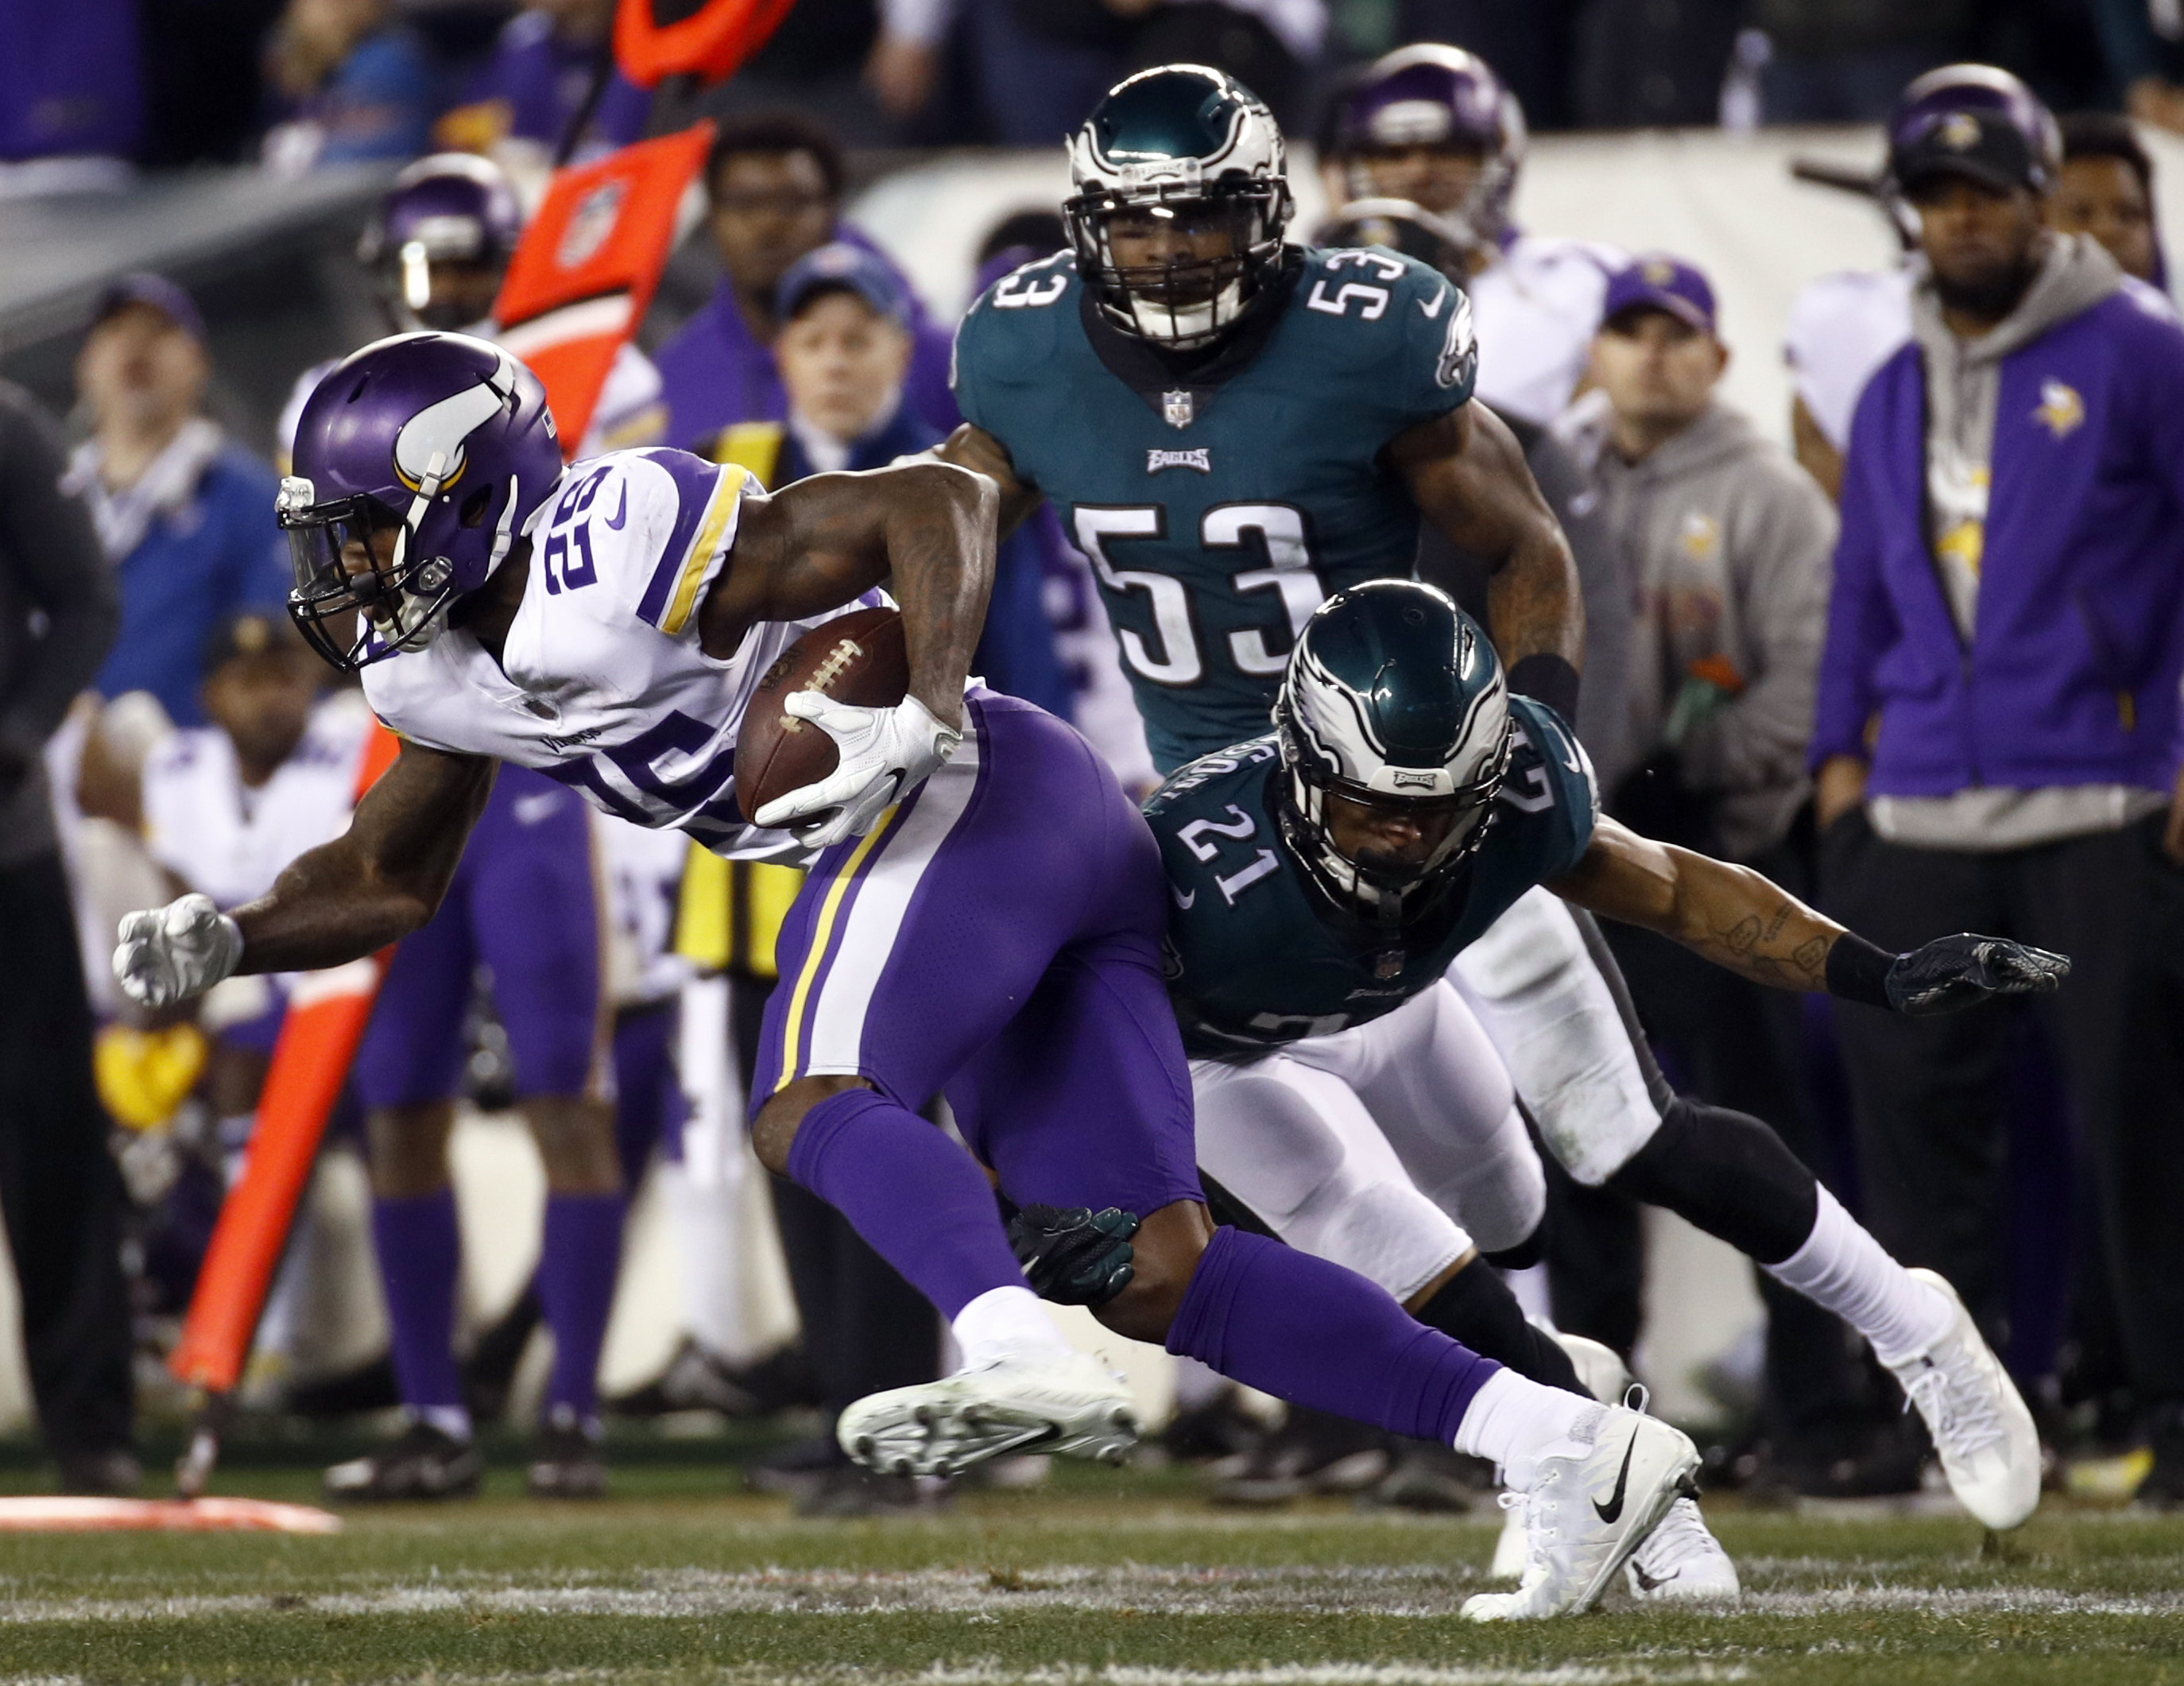 "<div class=""meta image-caption""><div class=""origin-logo origin-image ap""><span>AP</span></div><span class=""caption-text"">Minnesota Vikings' Latavius Murray gets past Philadelphia Eagles' Patrick Robinson during the second half of the NFL football NFC championship game Sunday, Jan. 21, 2018. (AP Photo/Patrick Semansky)</span></div>"